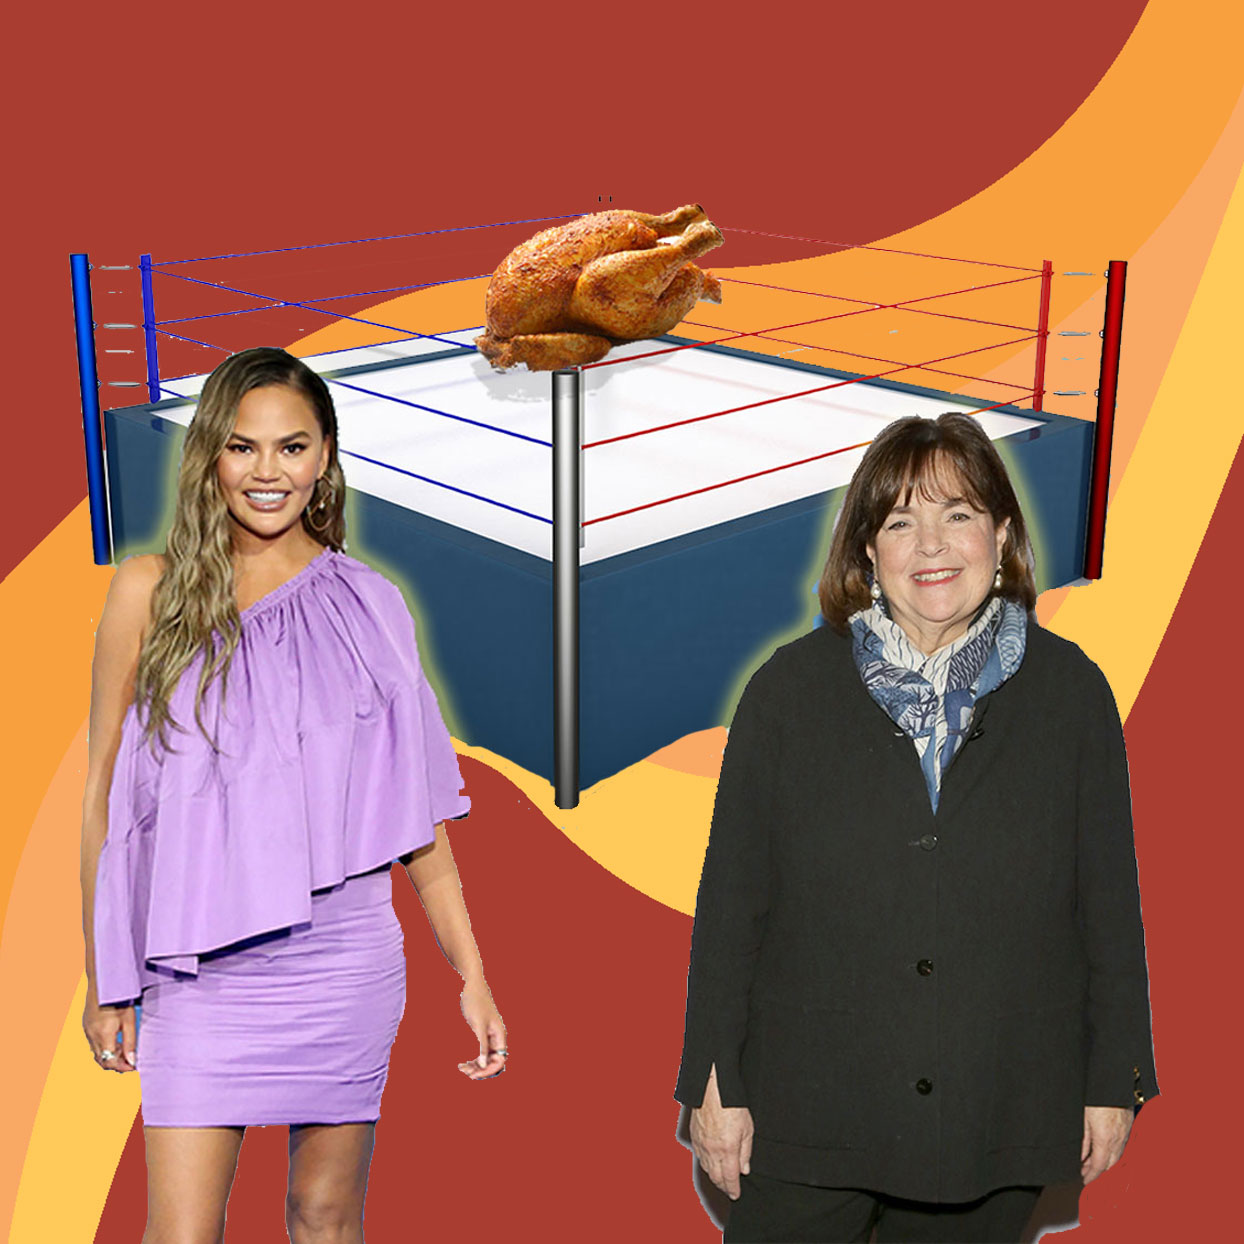 Chrissy Teigen and Ina Garten with graphic of a boxing ring with a beautifully cooked turkey in the ring